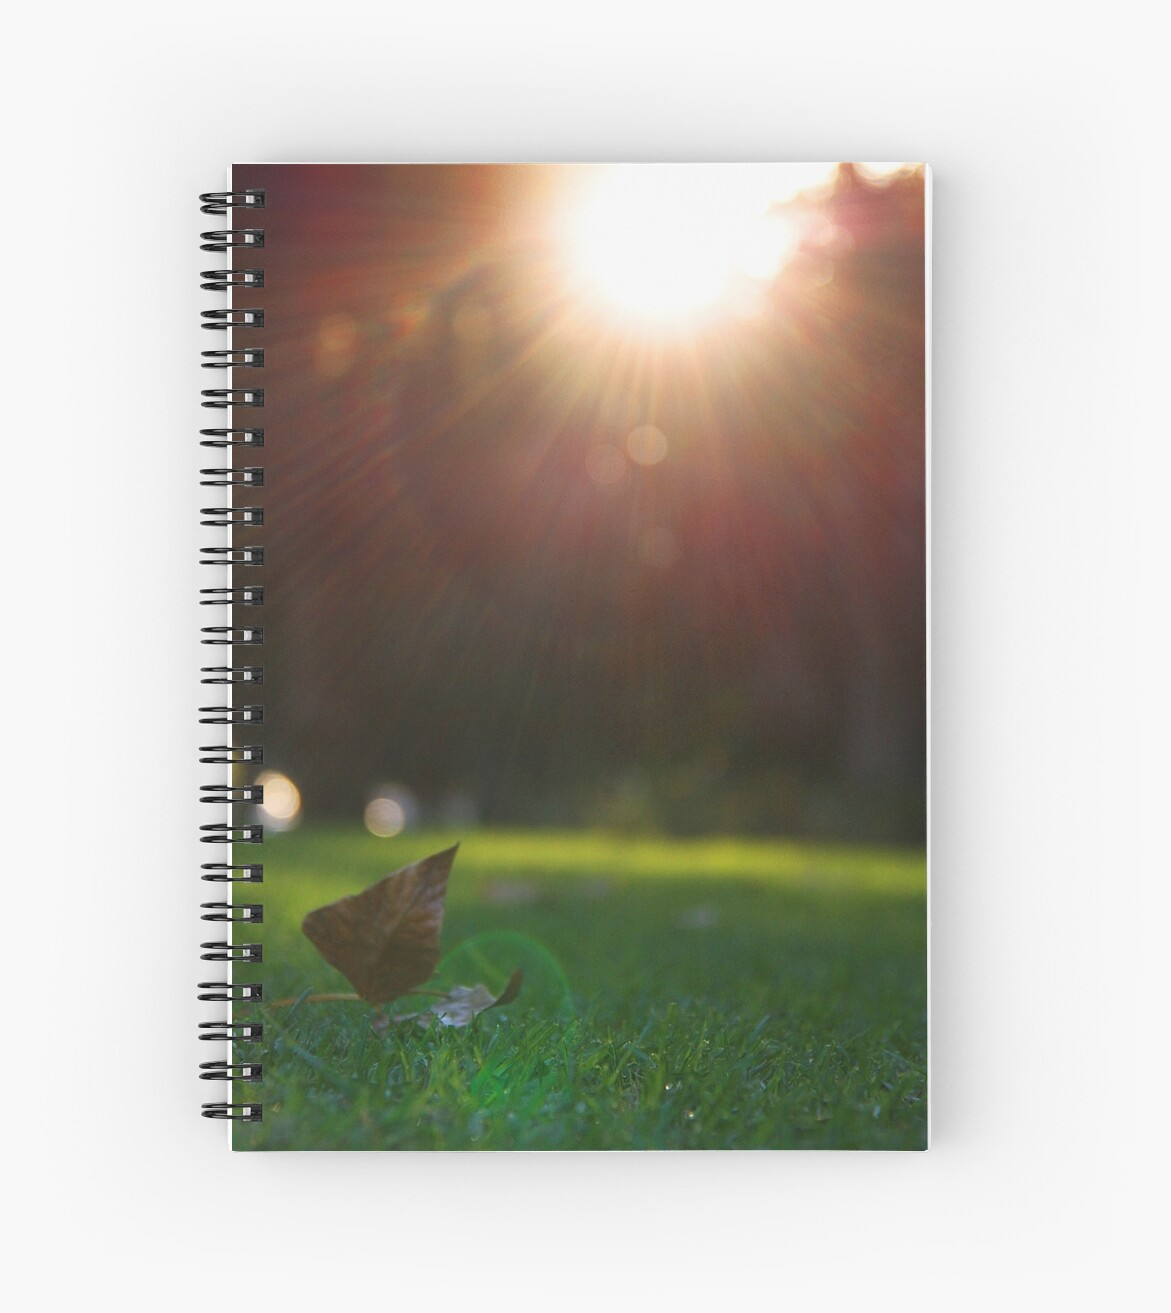 Grass and Sunshine - Hyde Park by Boxx